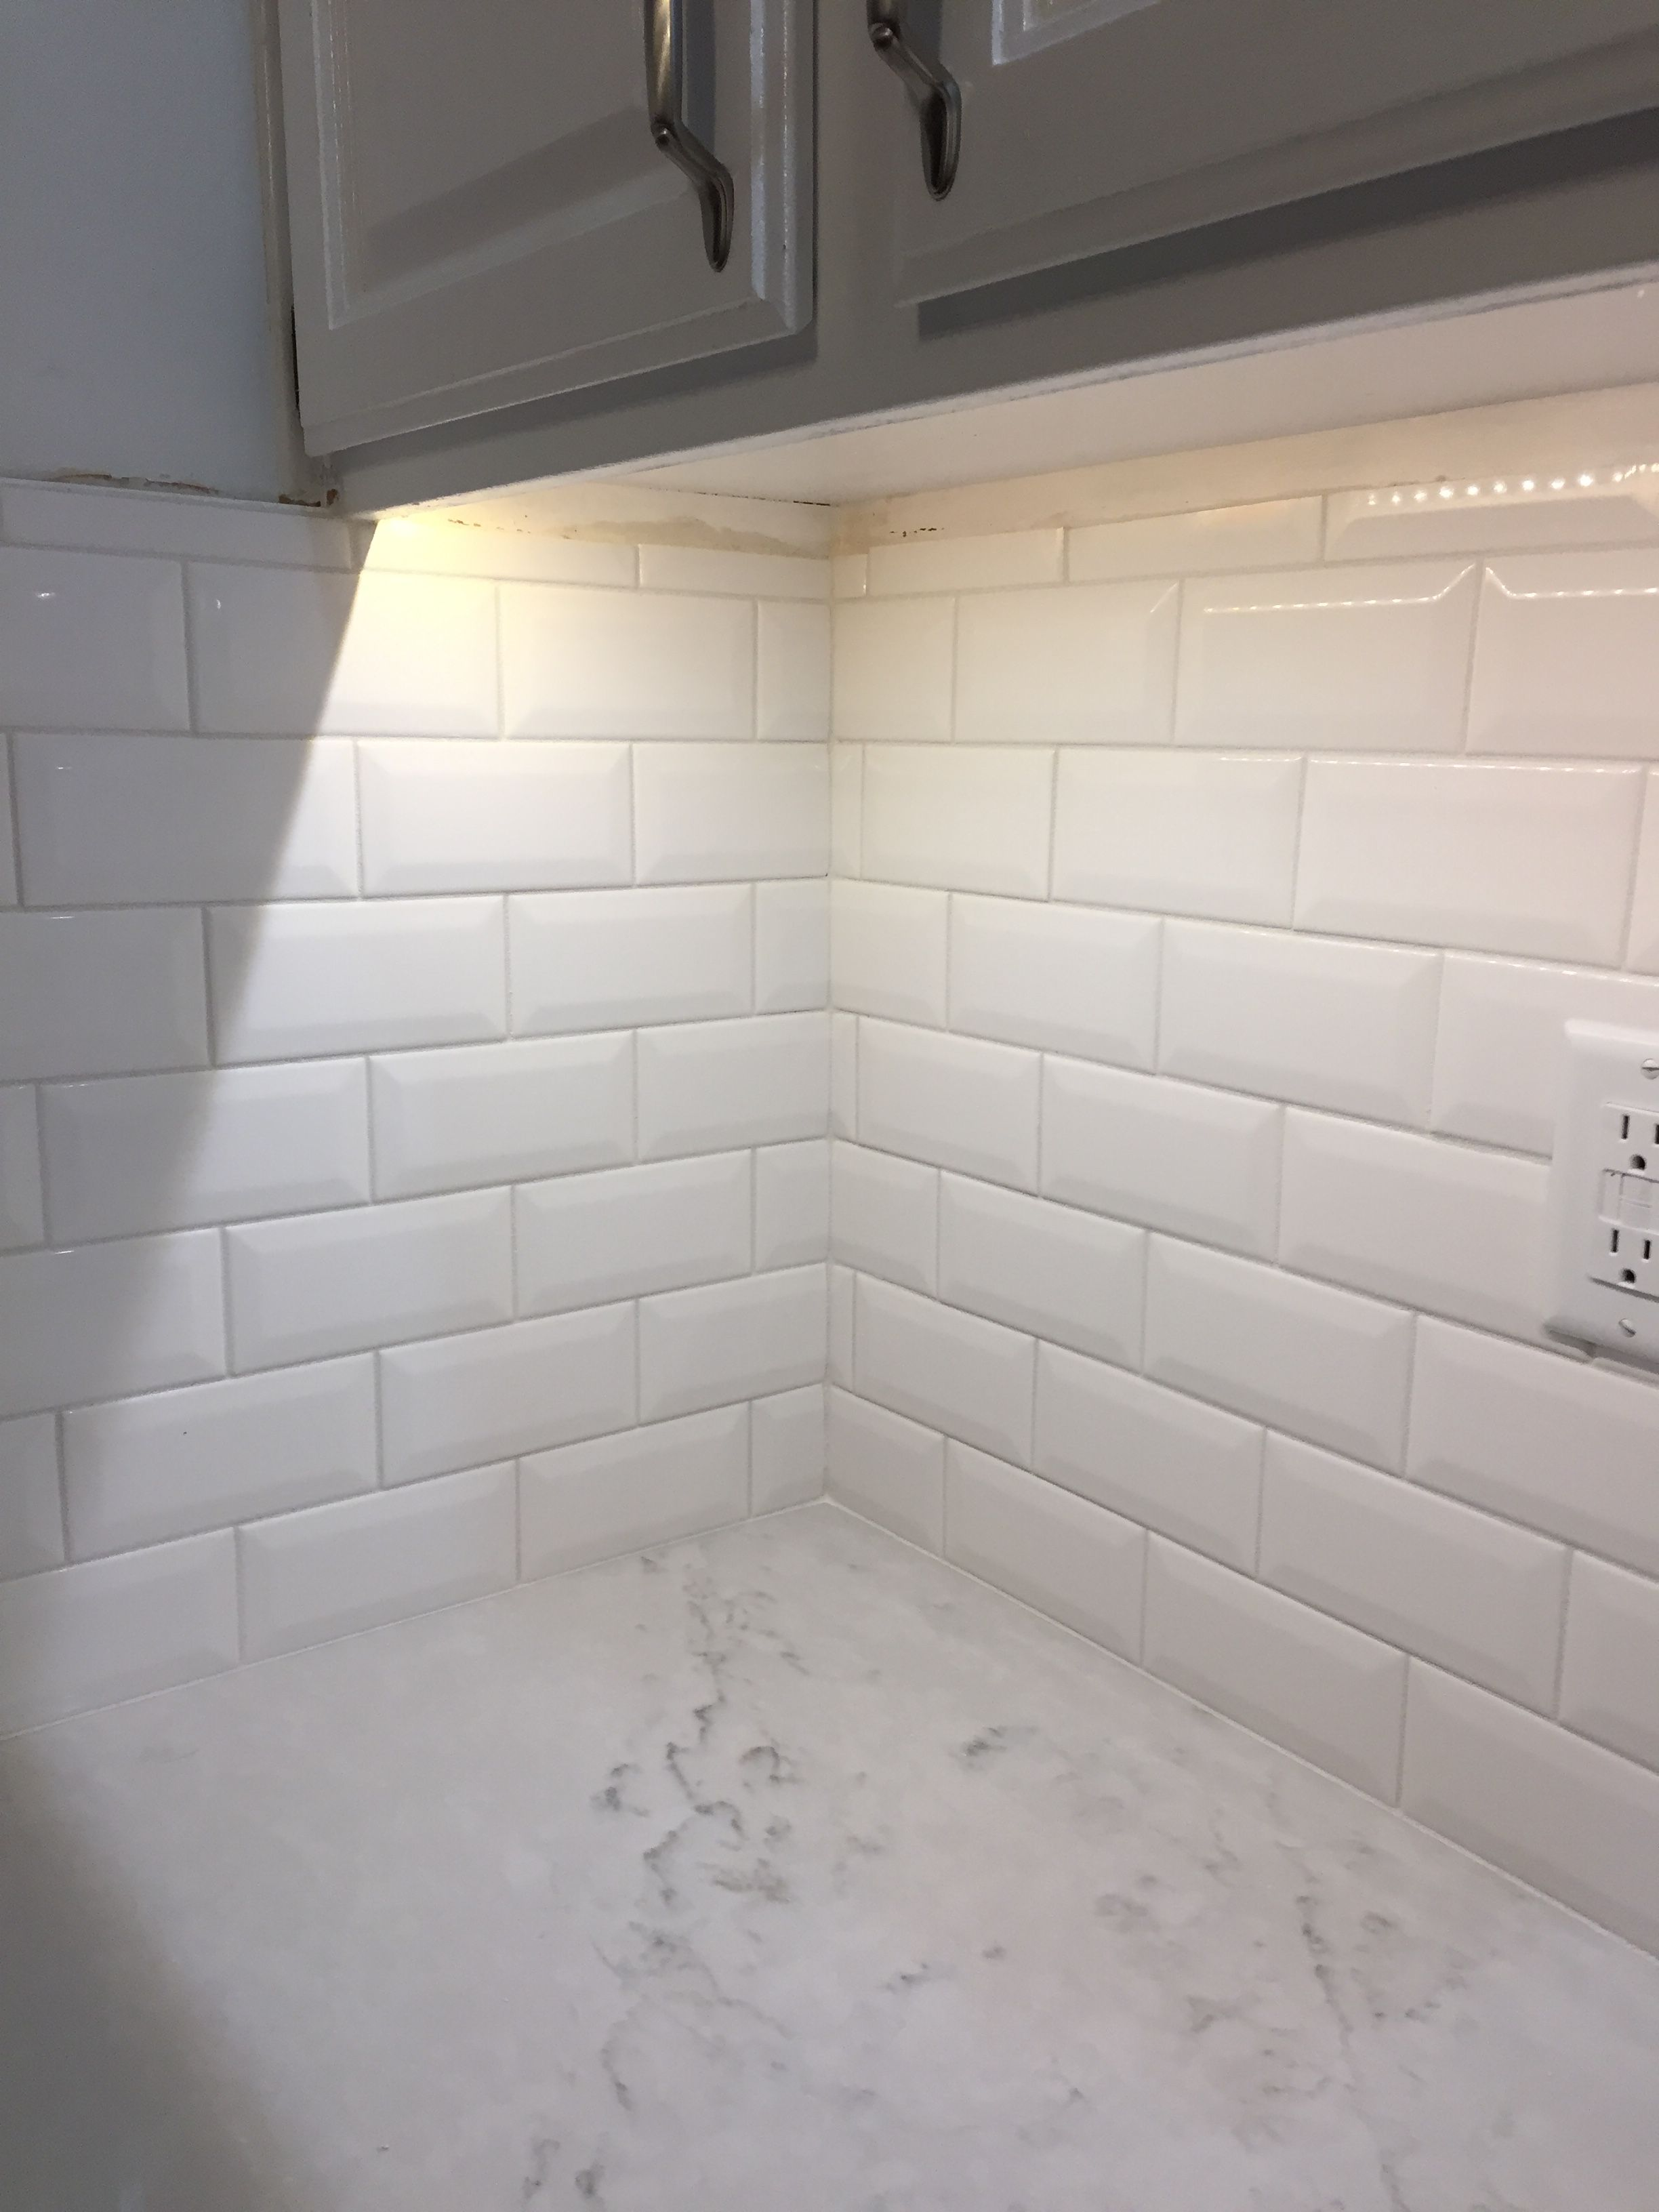 - The Beveled White Subway Tile Enlarges The Space To Make The